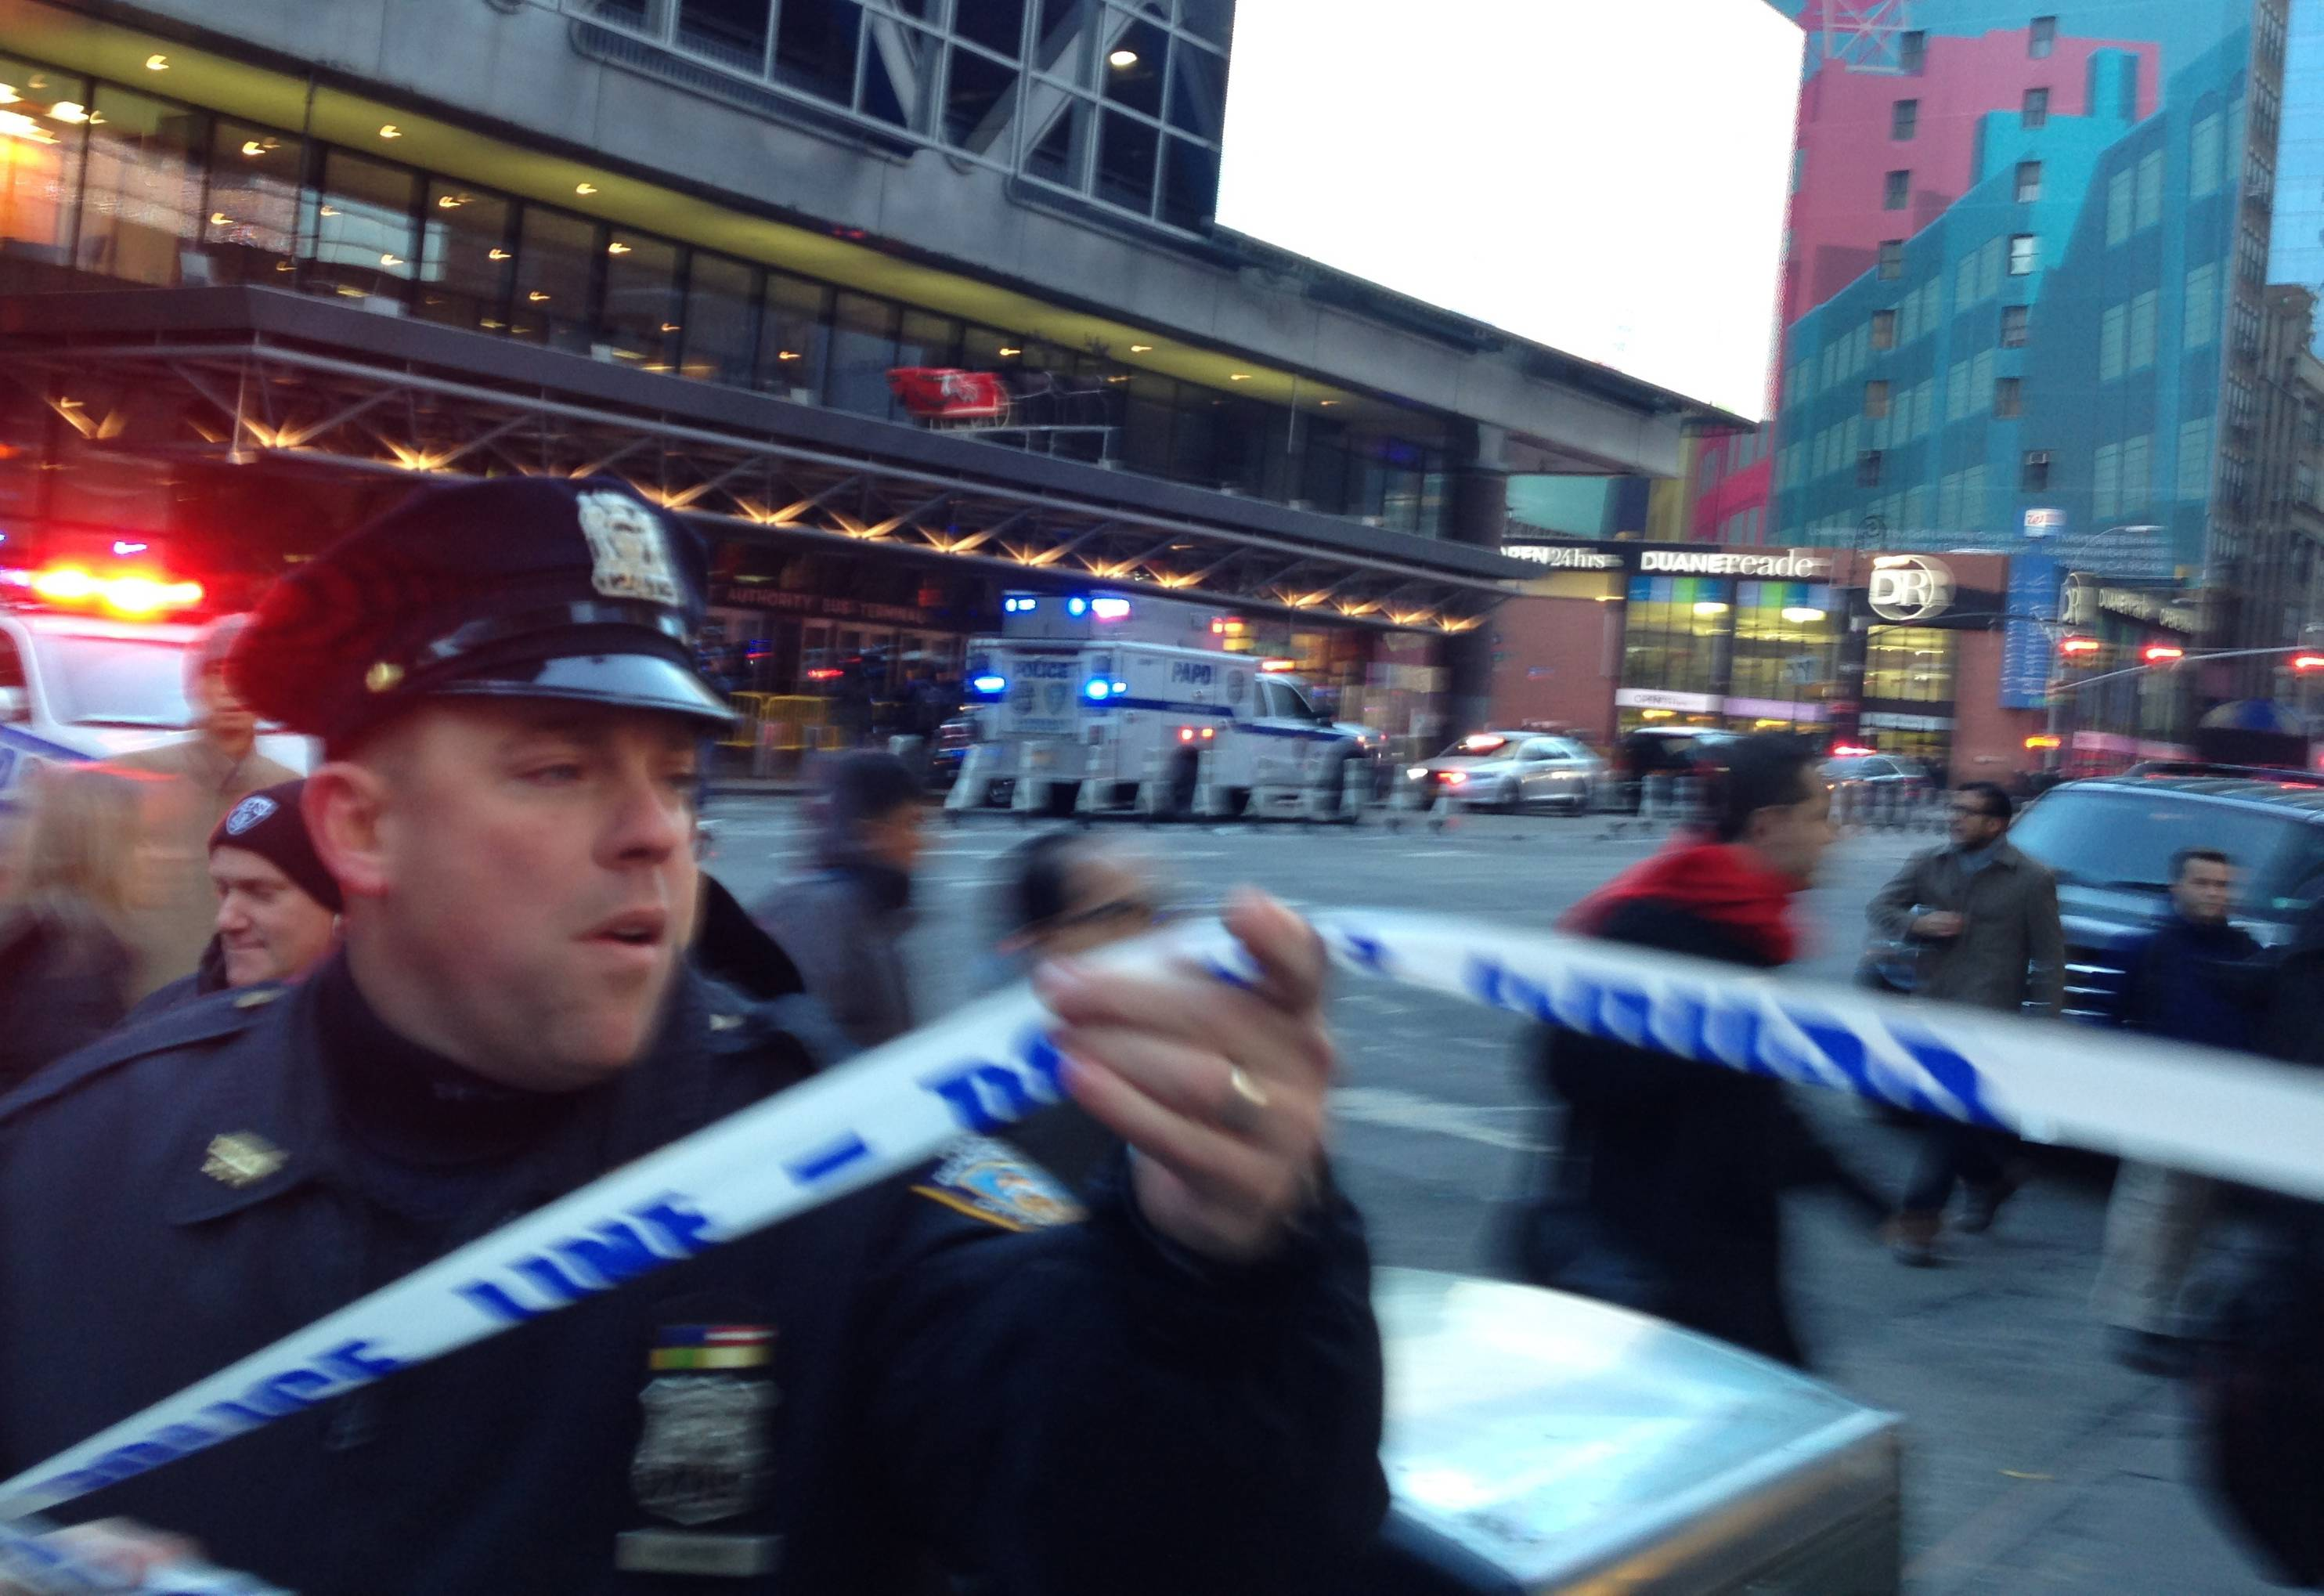 Police respond to a report of an explosion Monday near Times Square in New York.